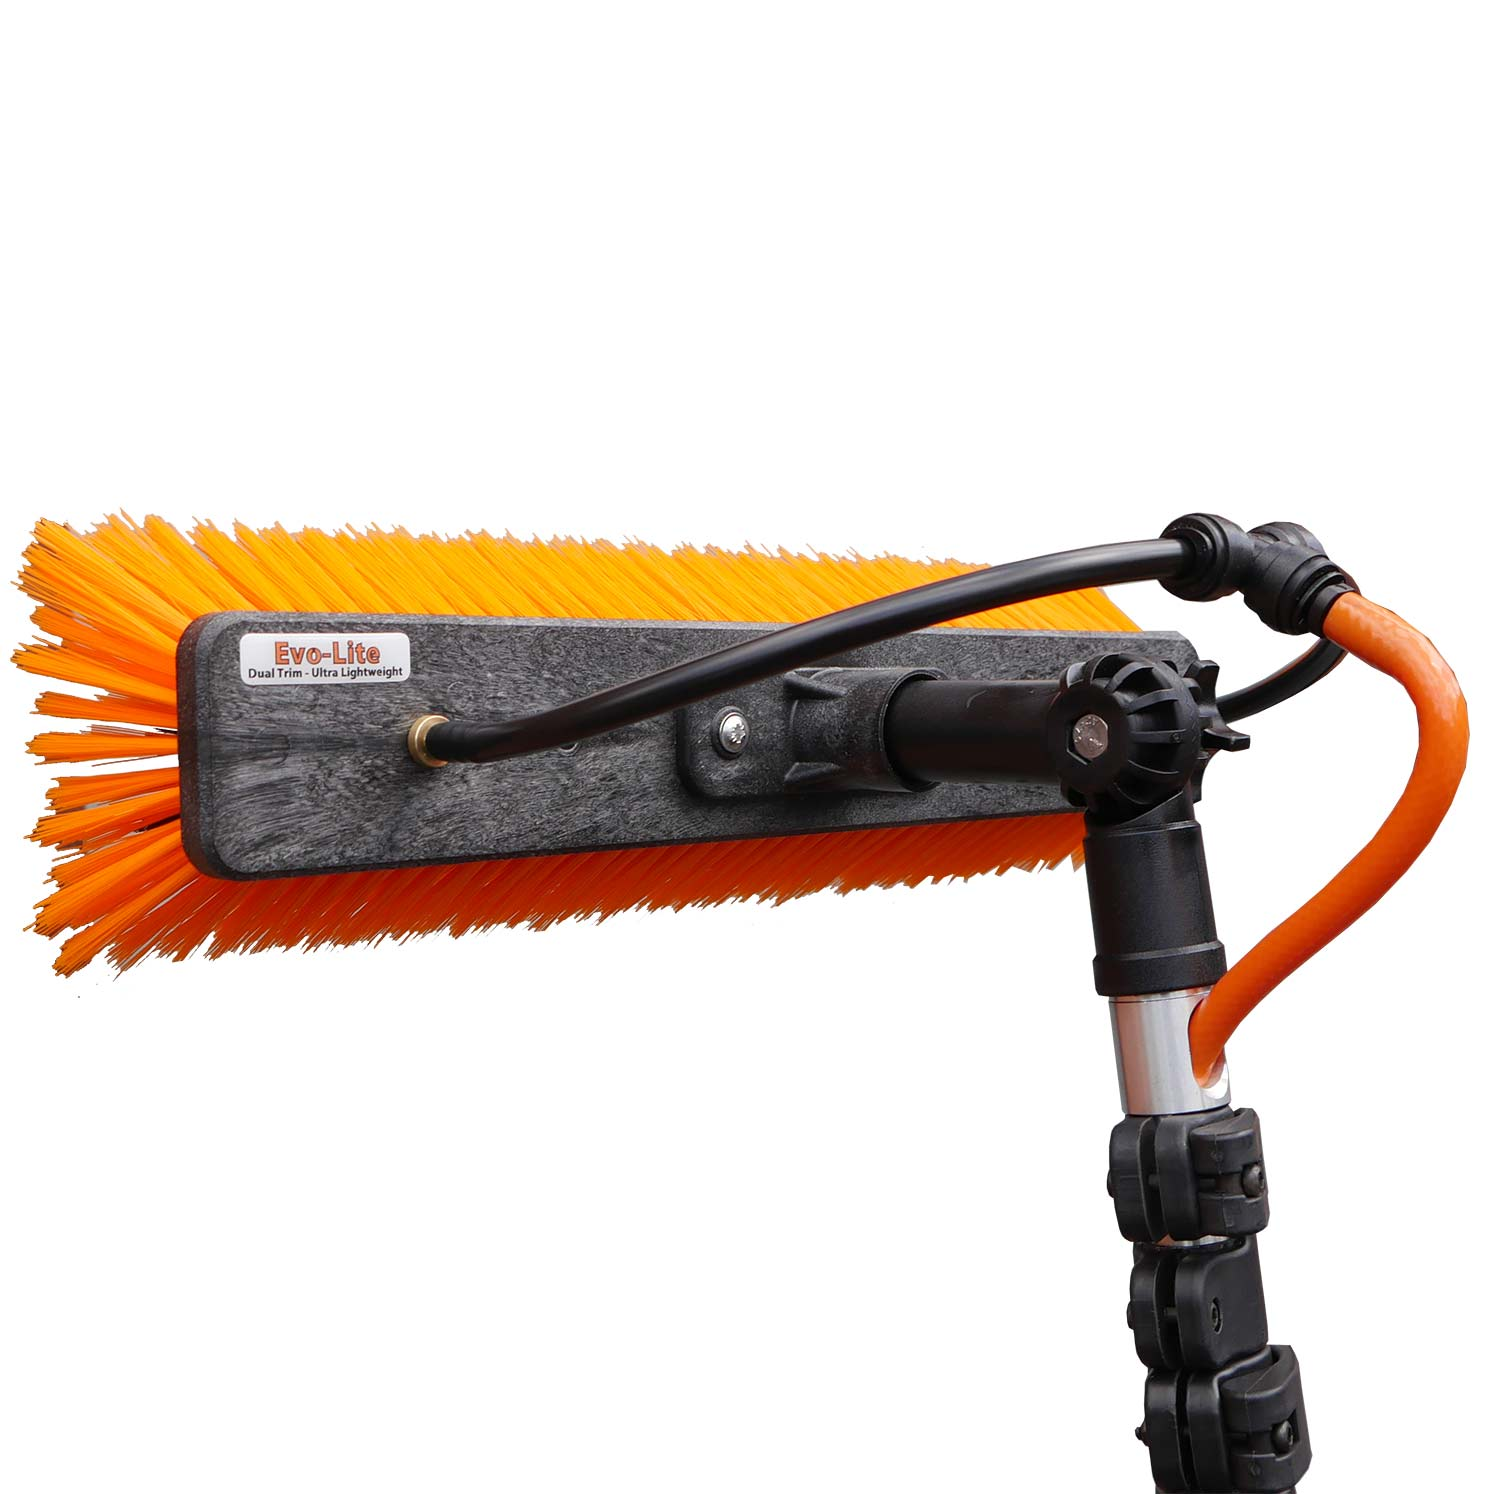 "14"" Water Fed Pole Brush for window cleaning"